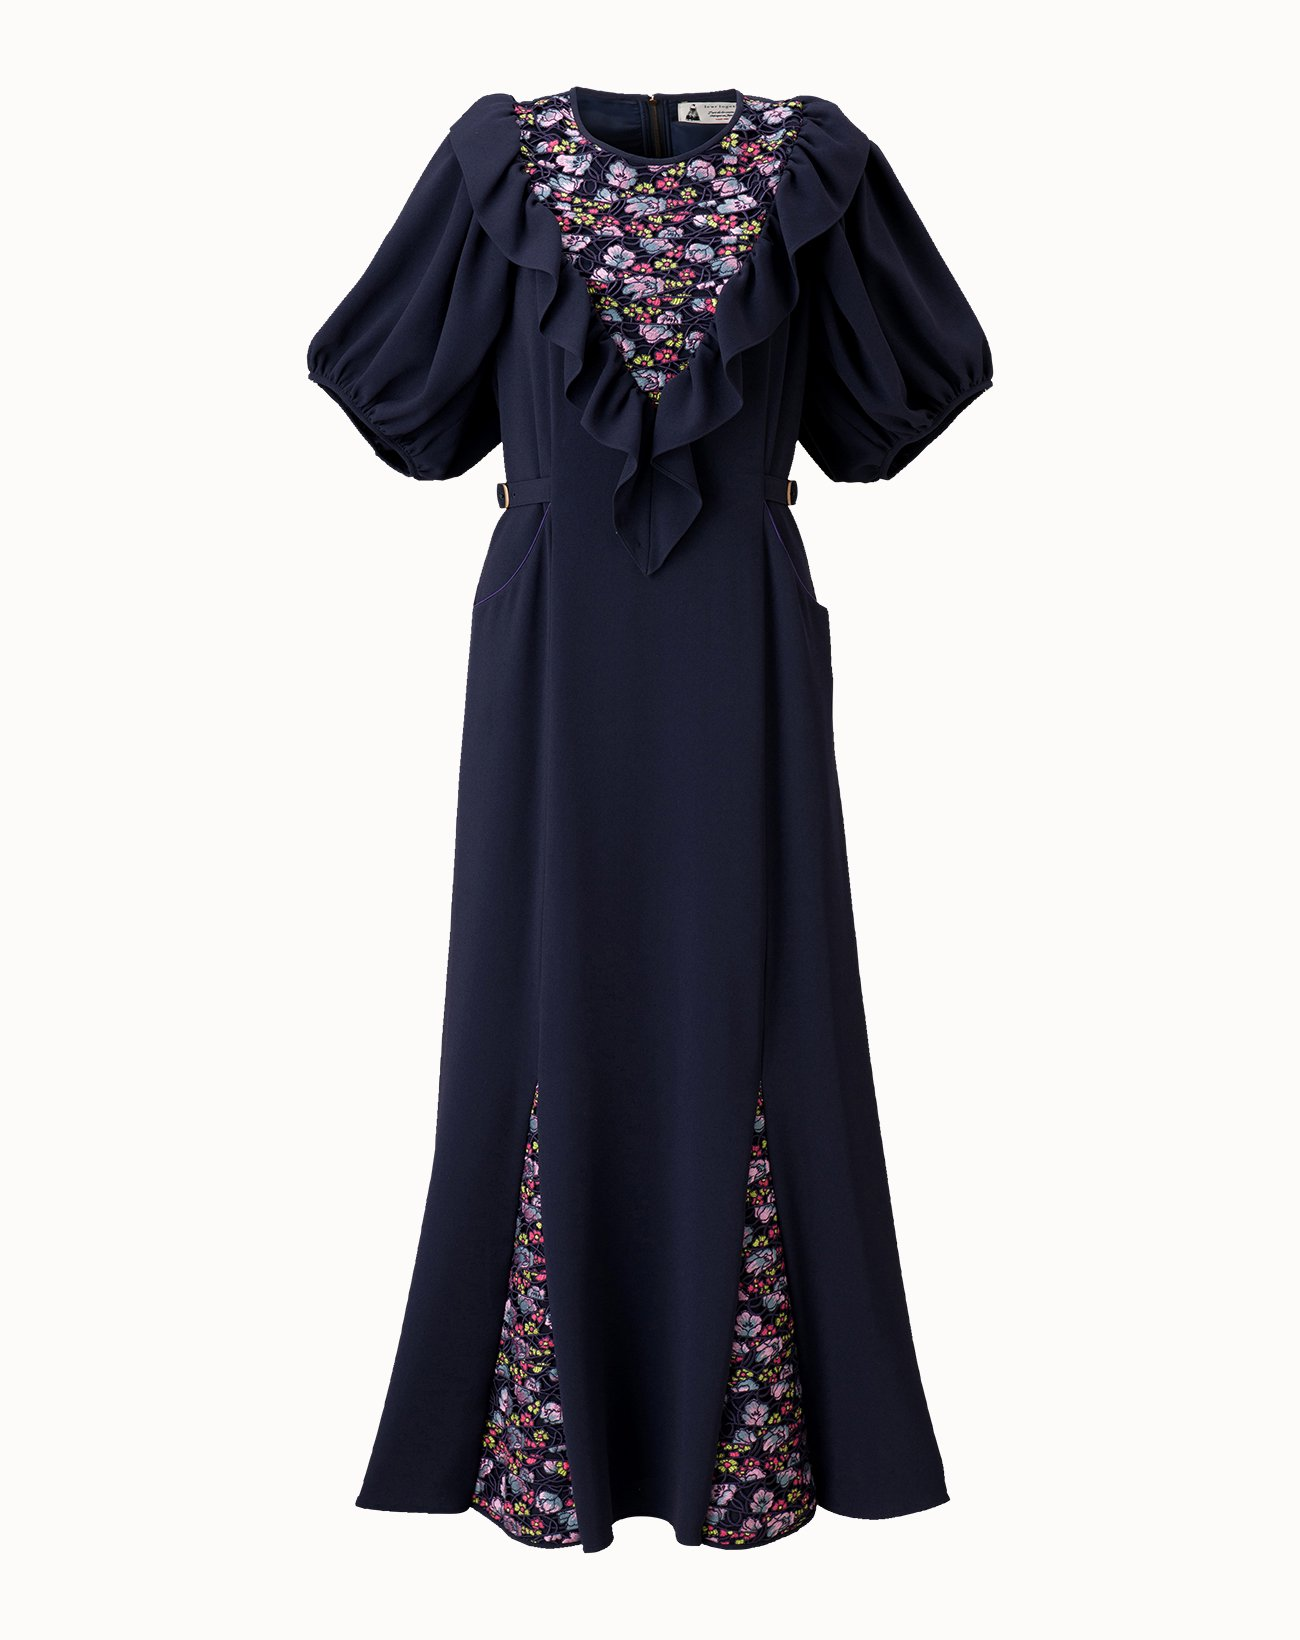 Couture Lace Dress - Navy